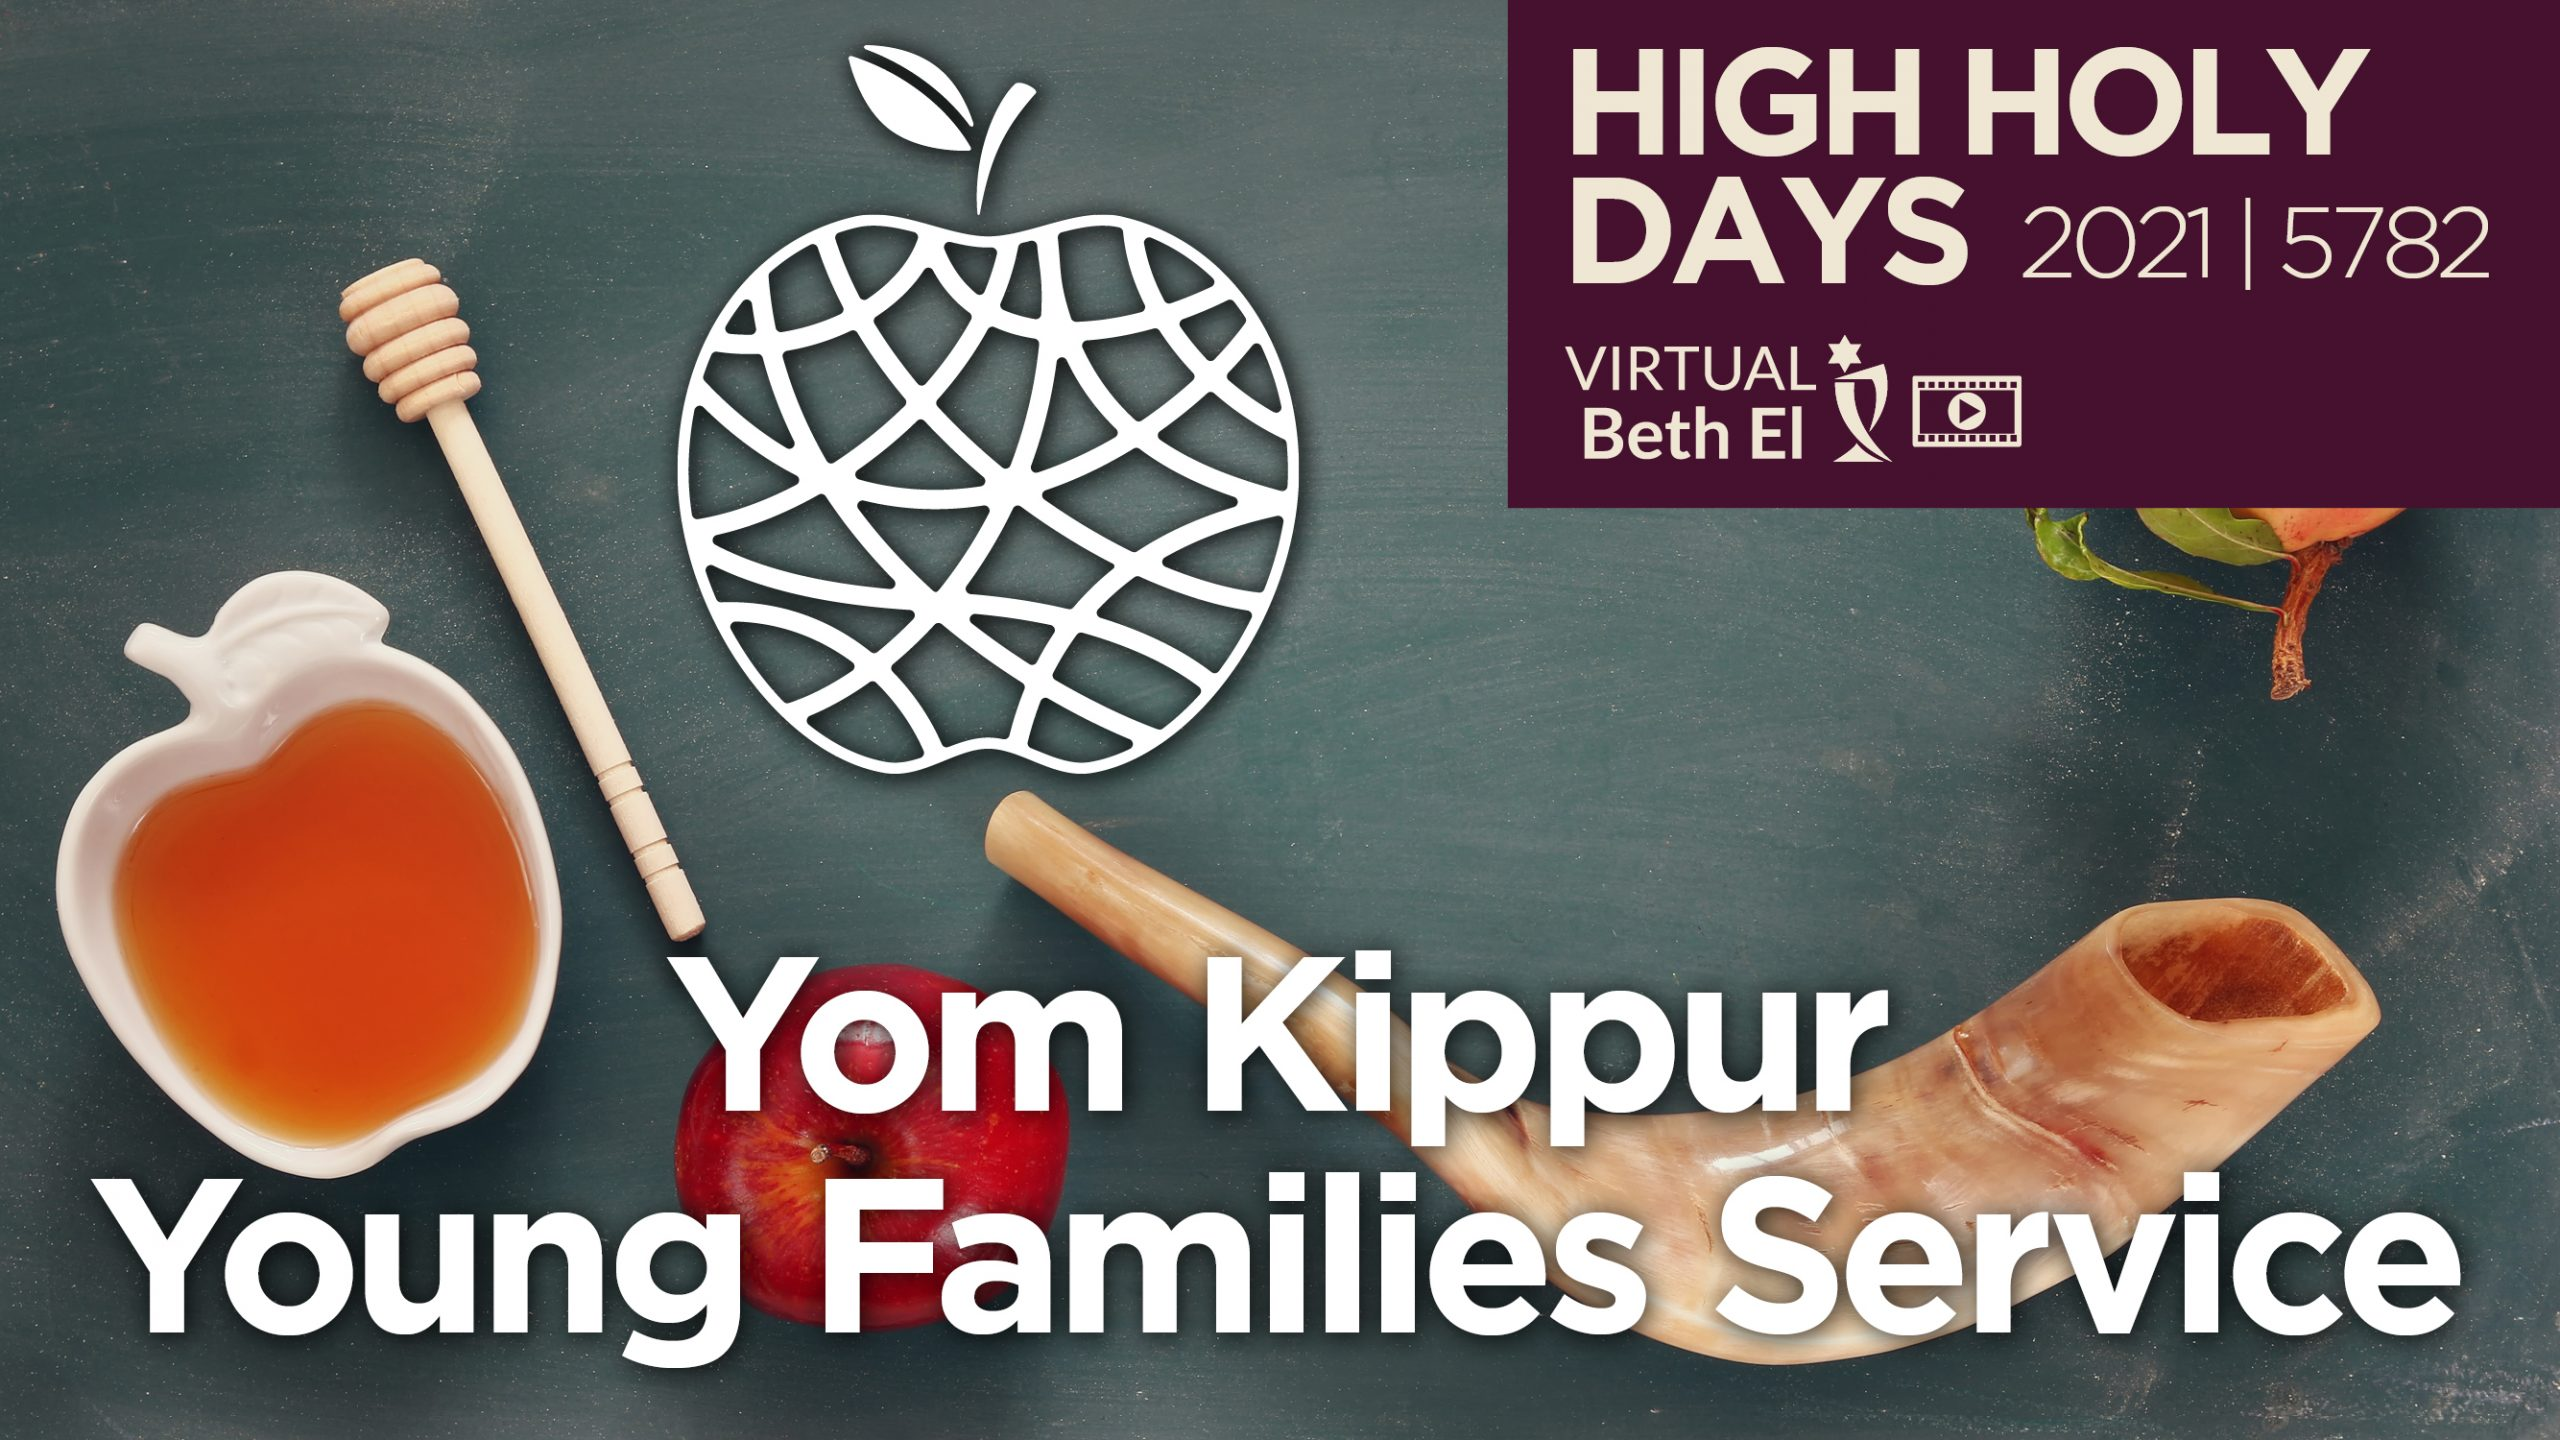 Yom Kippur Young Childrens Services Announcement Graphic for 2021 5782